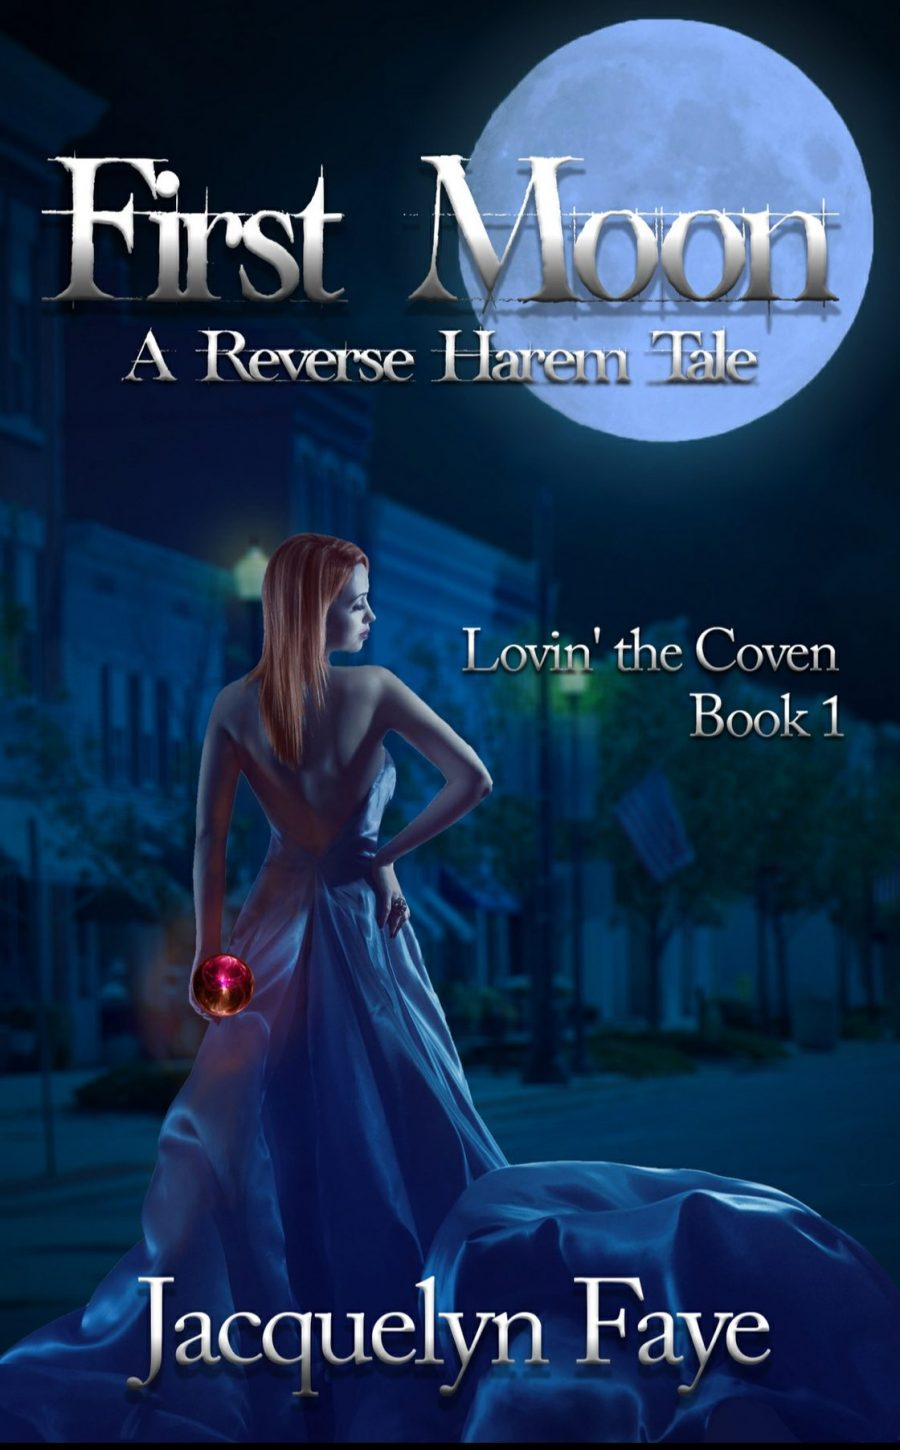 First Moon *Lovin the Coven - Book 1* by Jacquelyn Faye - A Book Review #BookReview #ReverseHarem #RH #Paranormal #WhyChoose #PNR